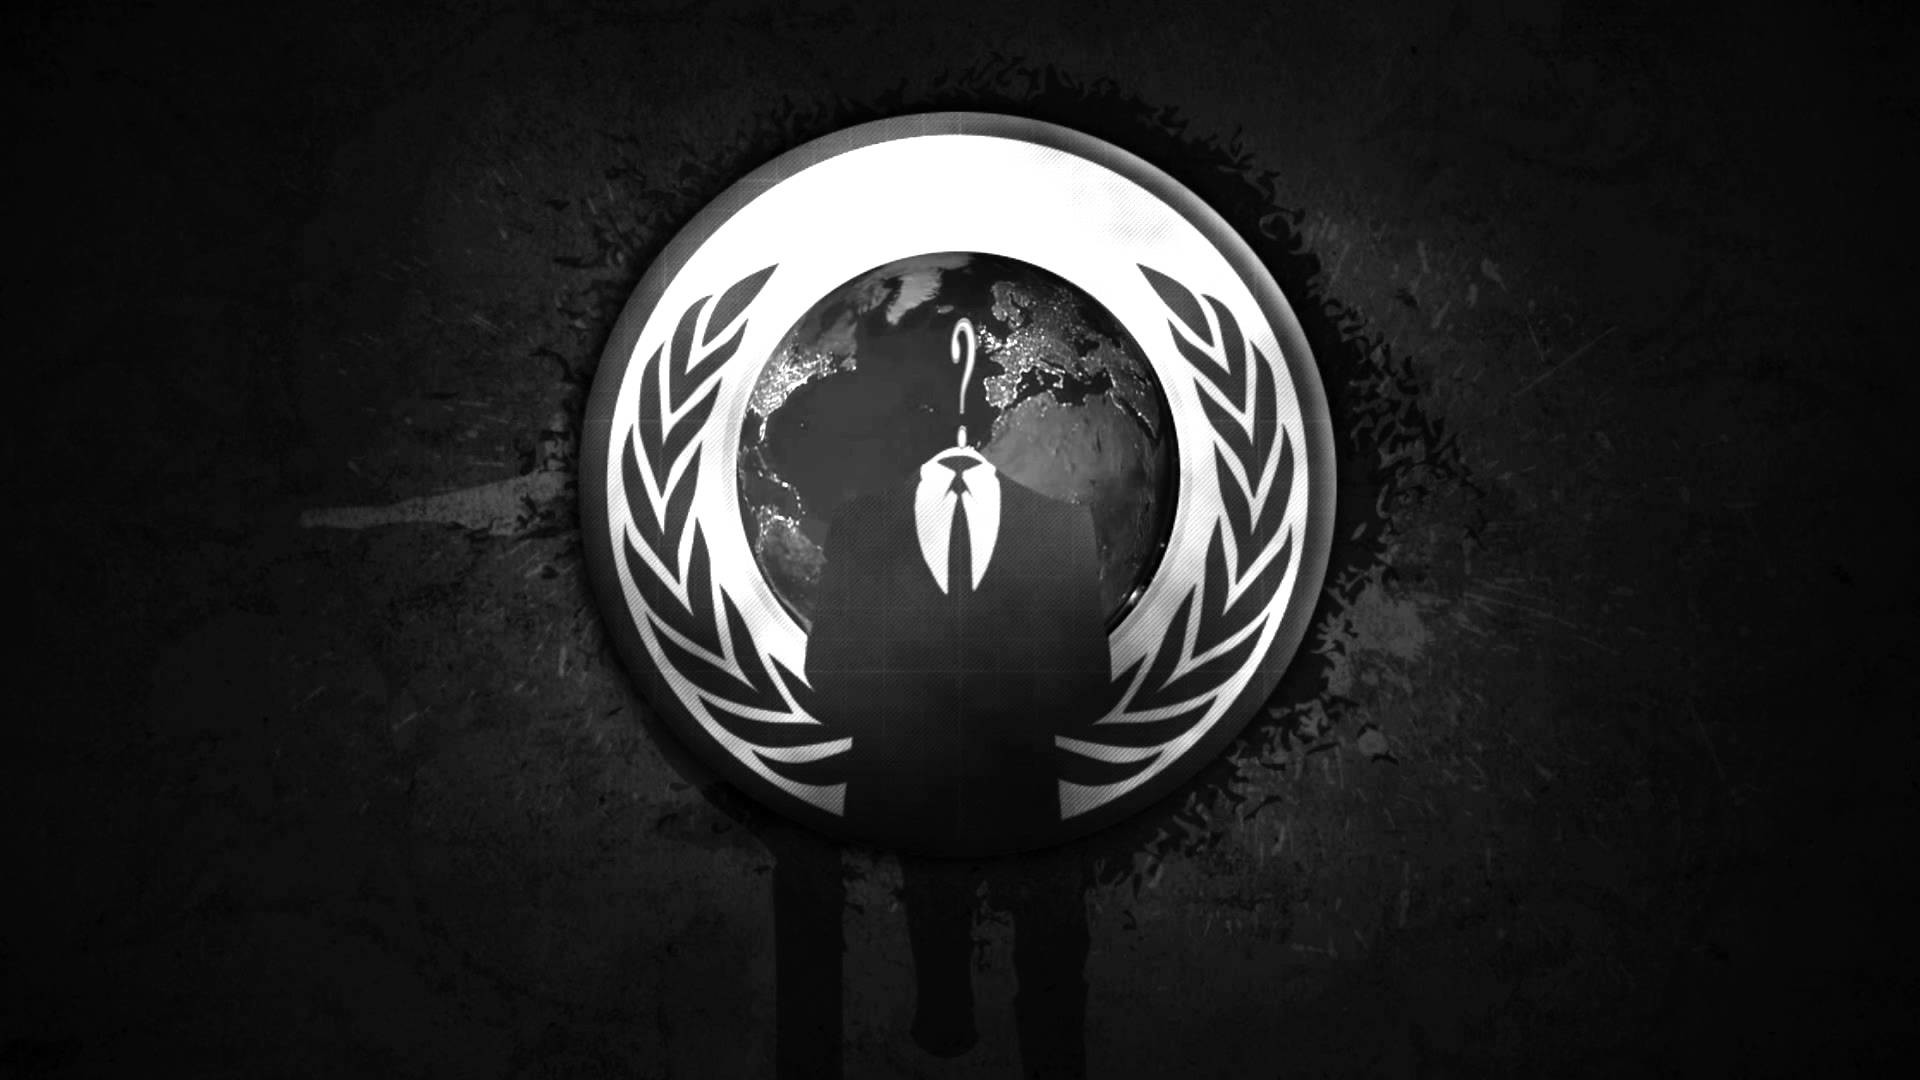 anonymous hd wallpapers (79+ images)